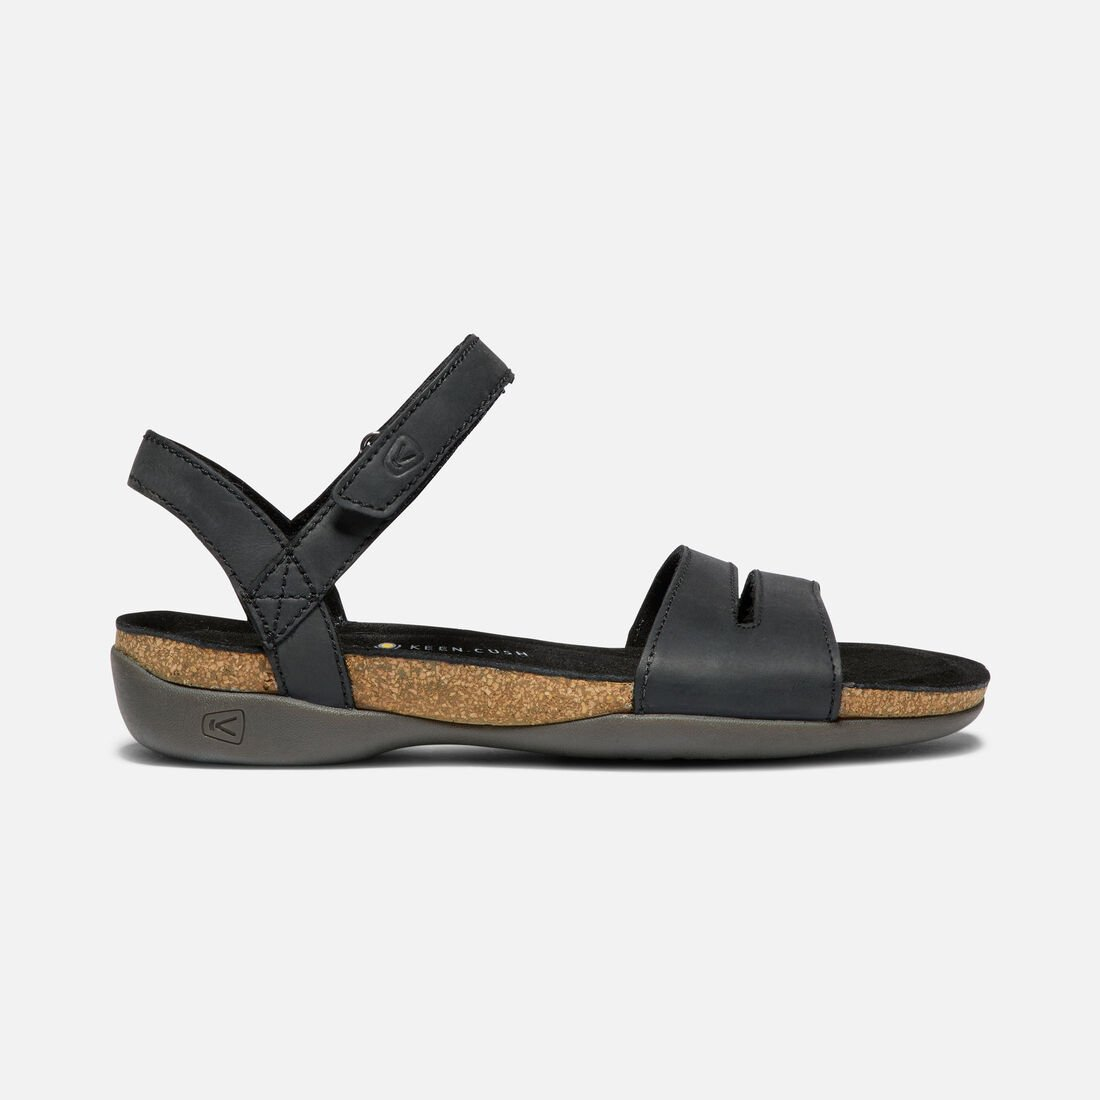 657612565b9f Women s ANA CORTEZ SANDAL in BLACK BLACK - large view.